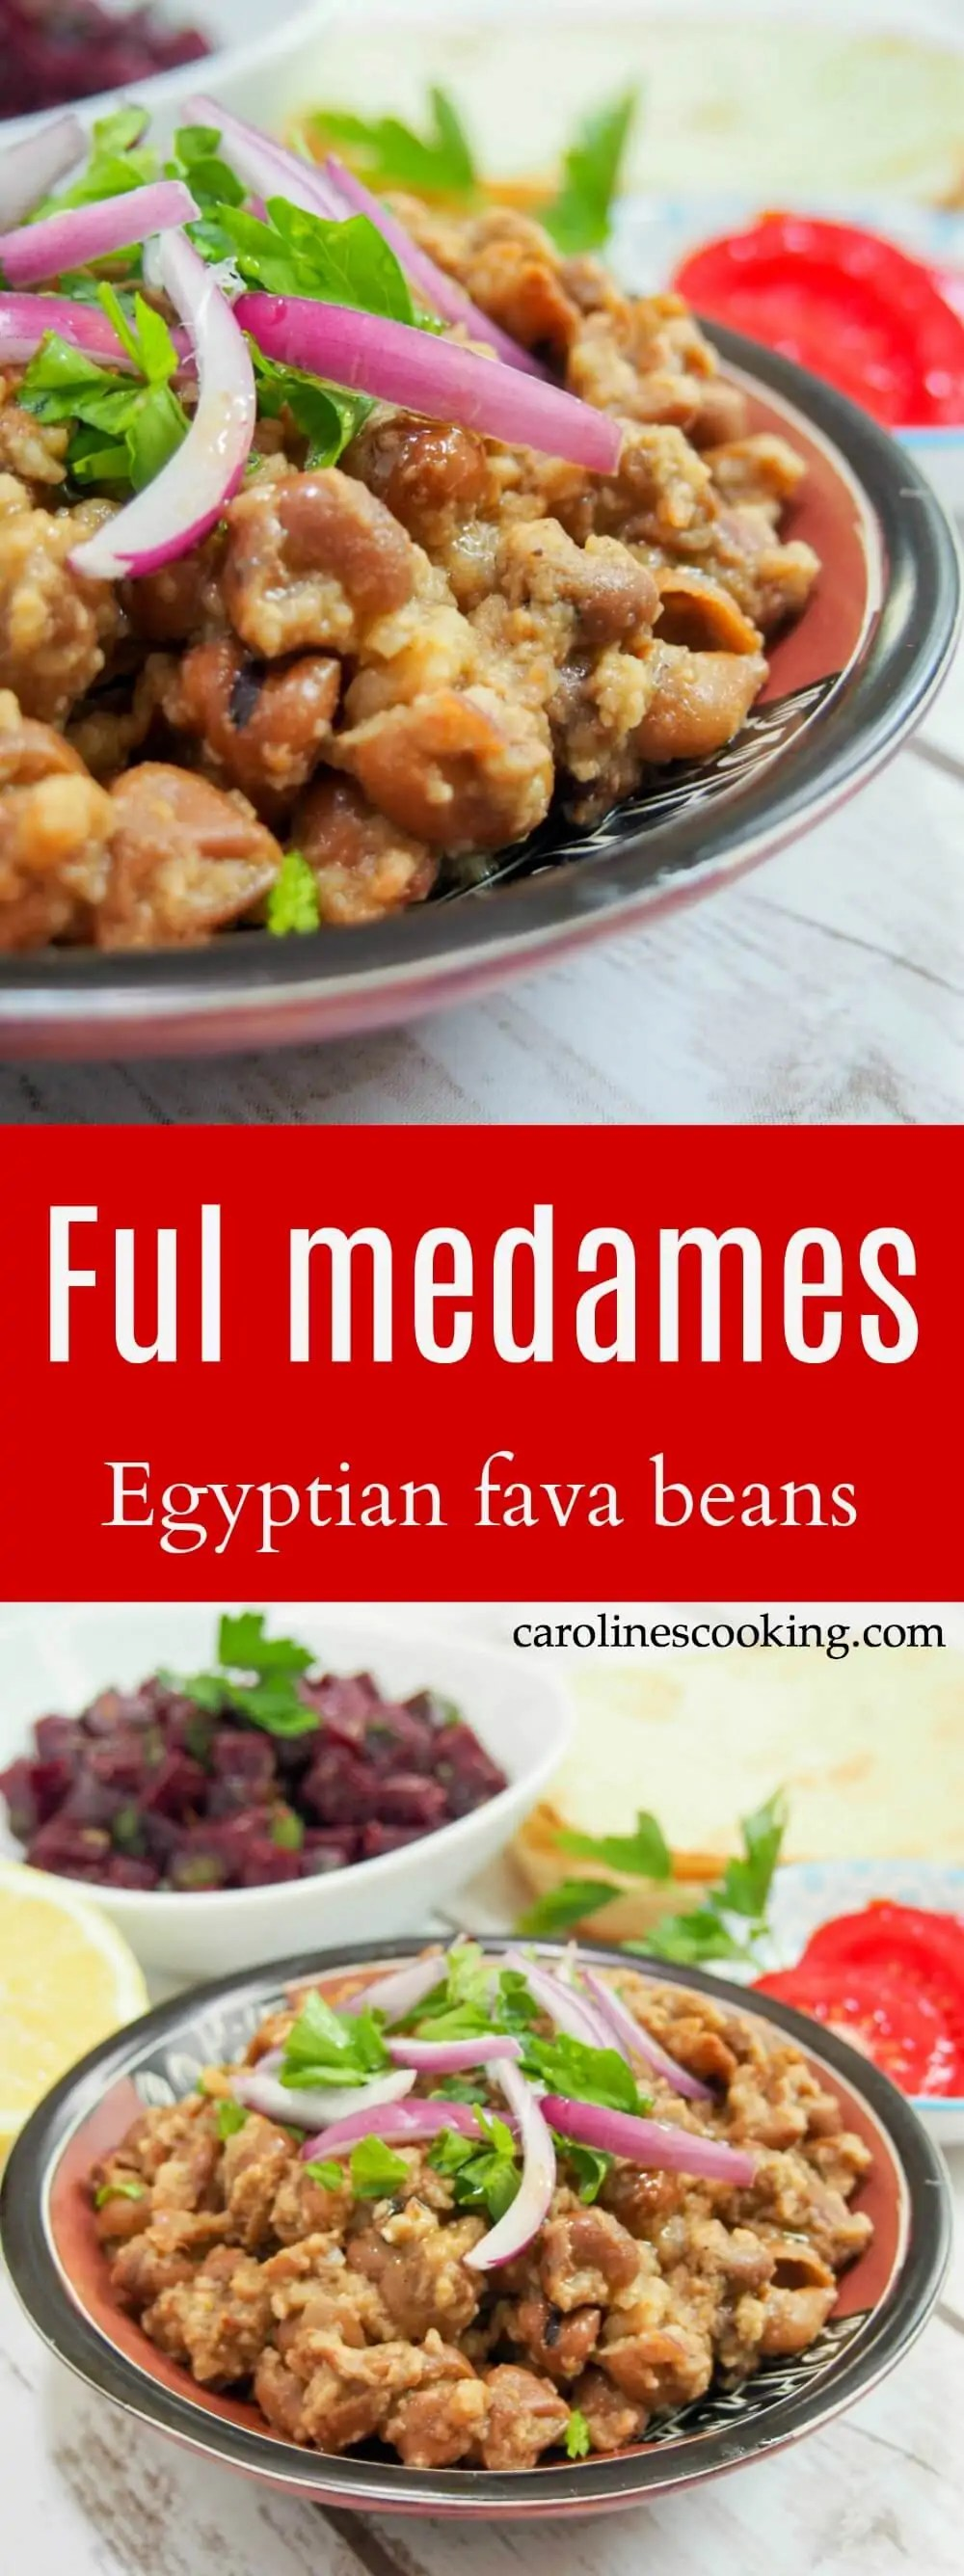 Ful medames is a classic Egyptian dish - incredibly simple warm, seasoned fava beans. Traditionally breakfast, but great as part of any mezze meal.